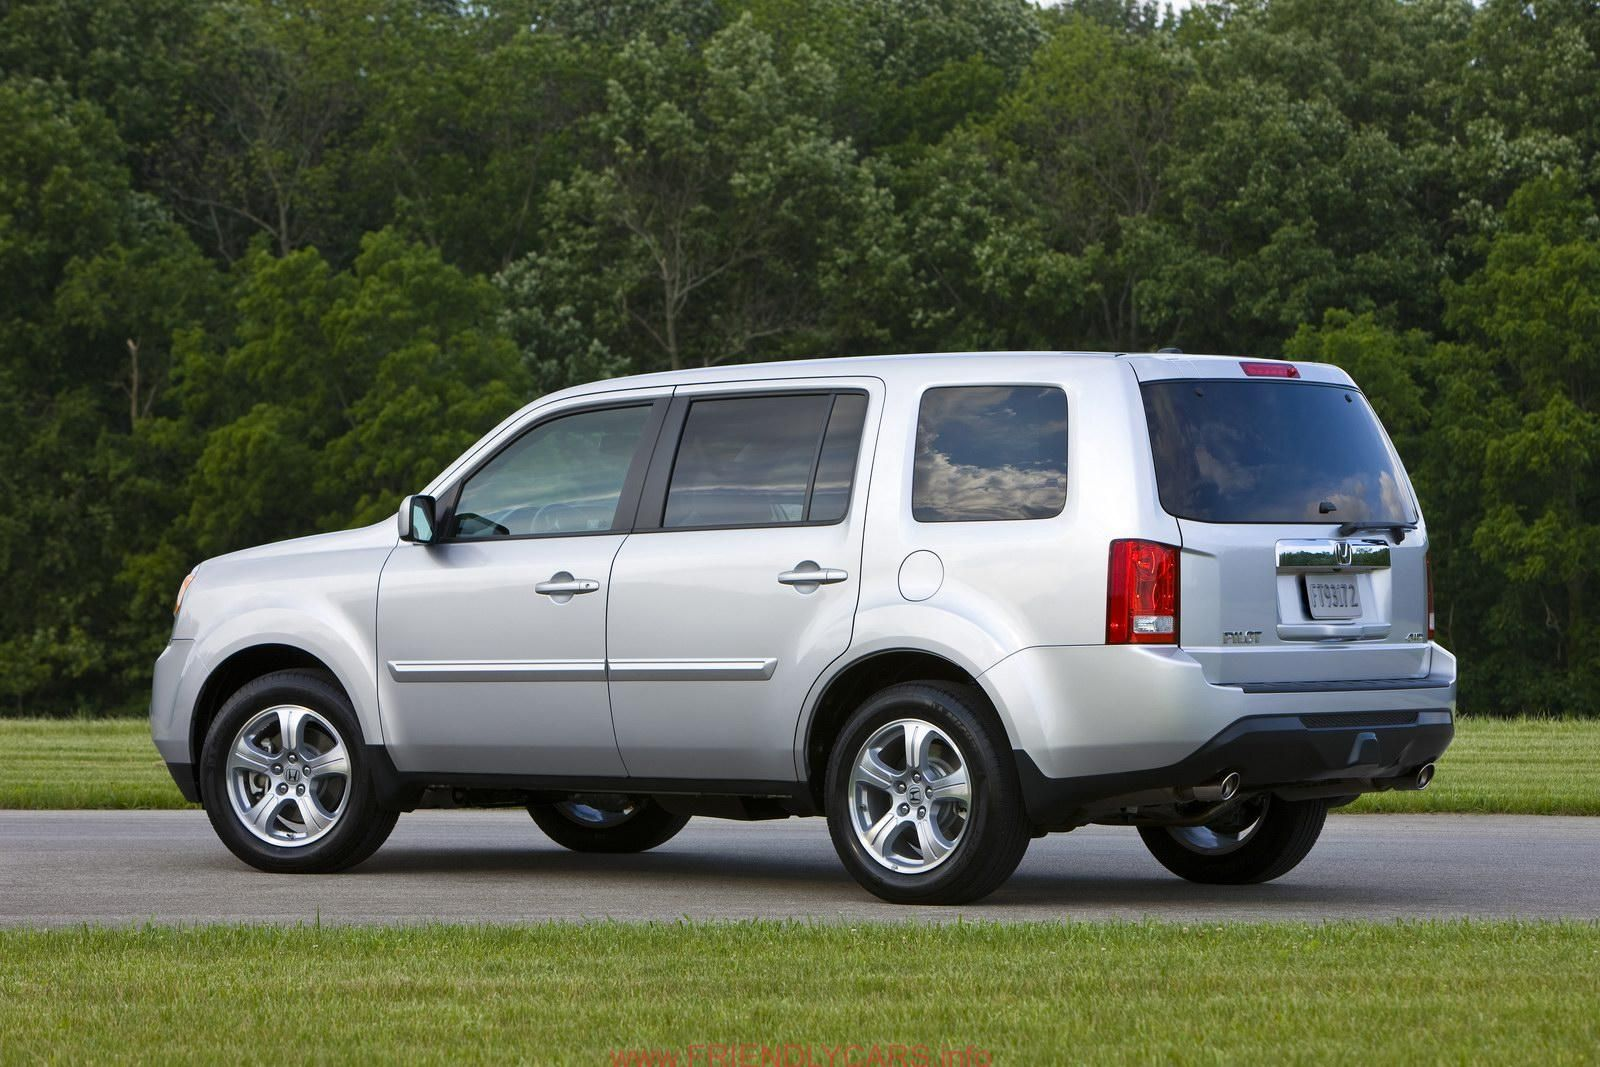 Cool Honda Pilot 2014 Exterior Colors Car Images Hd Refreshed 2012 Honda  Pilot Revealed In Detail Todays Auto Reviews